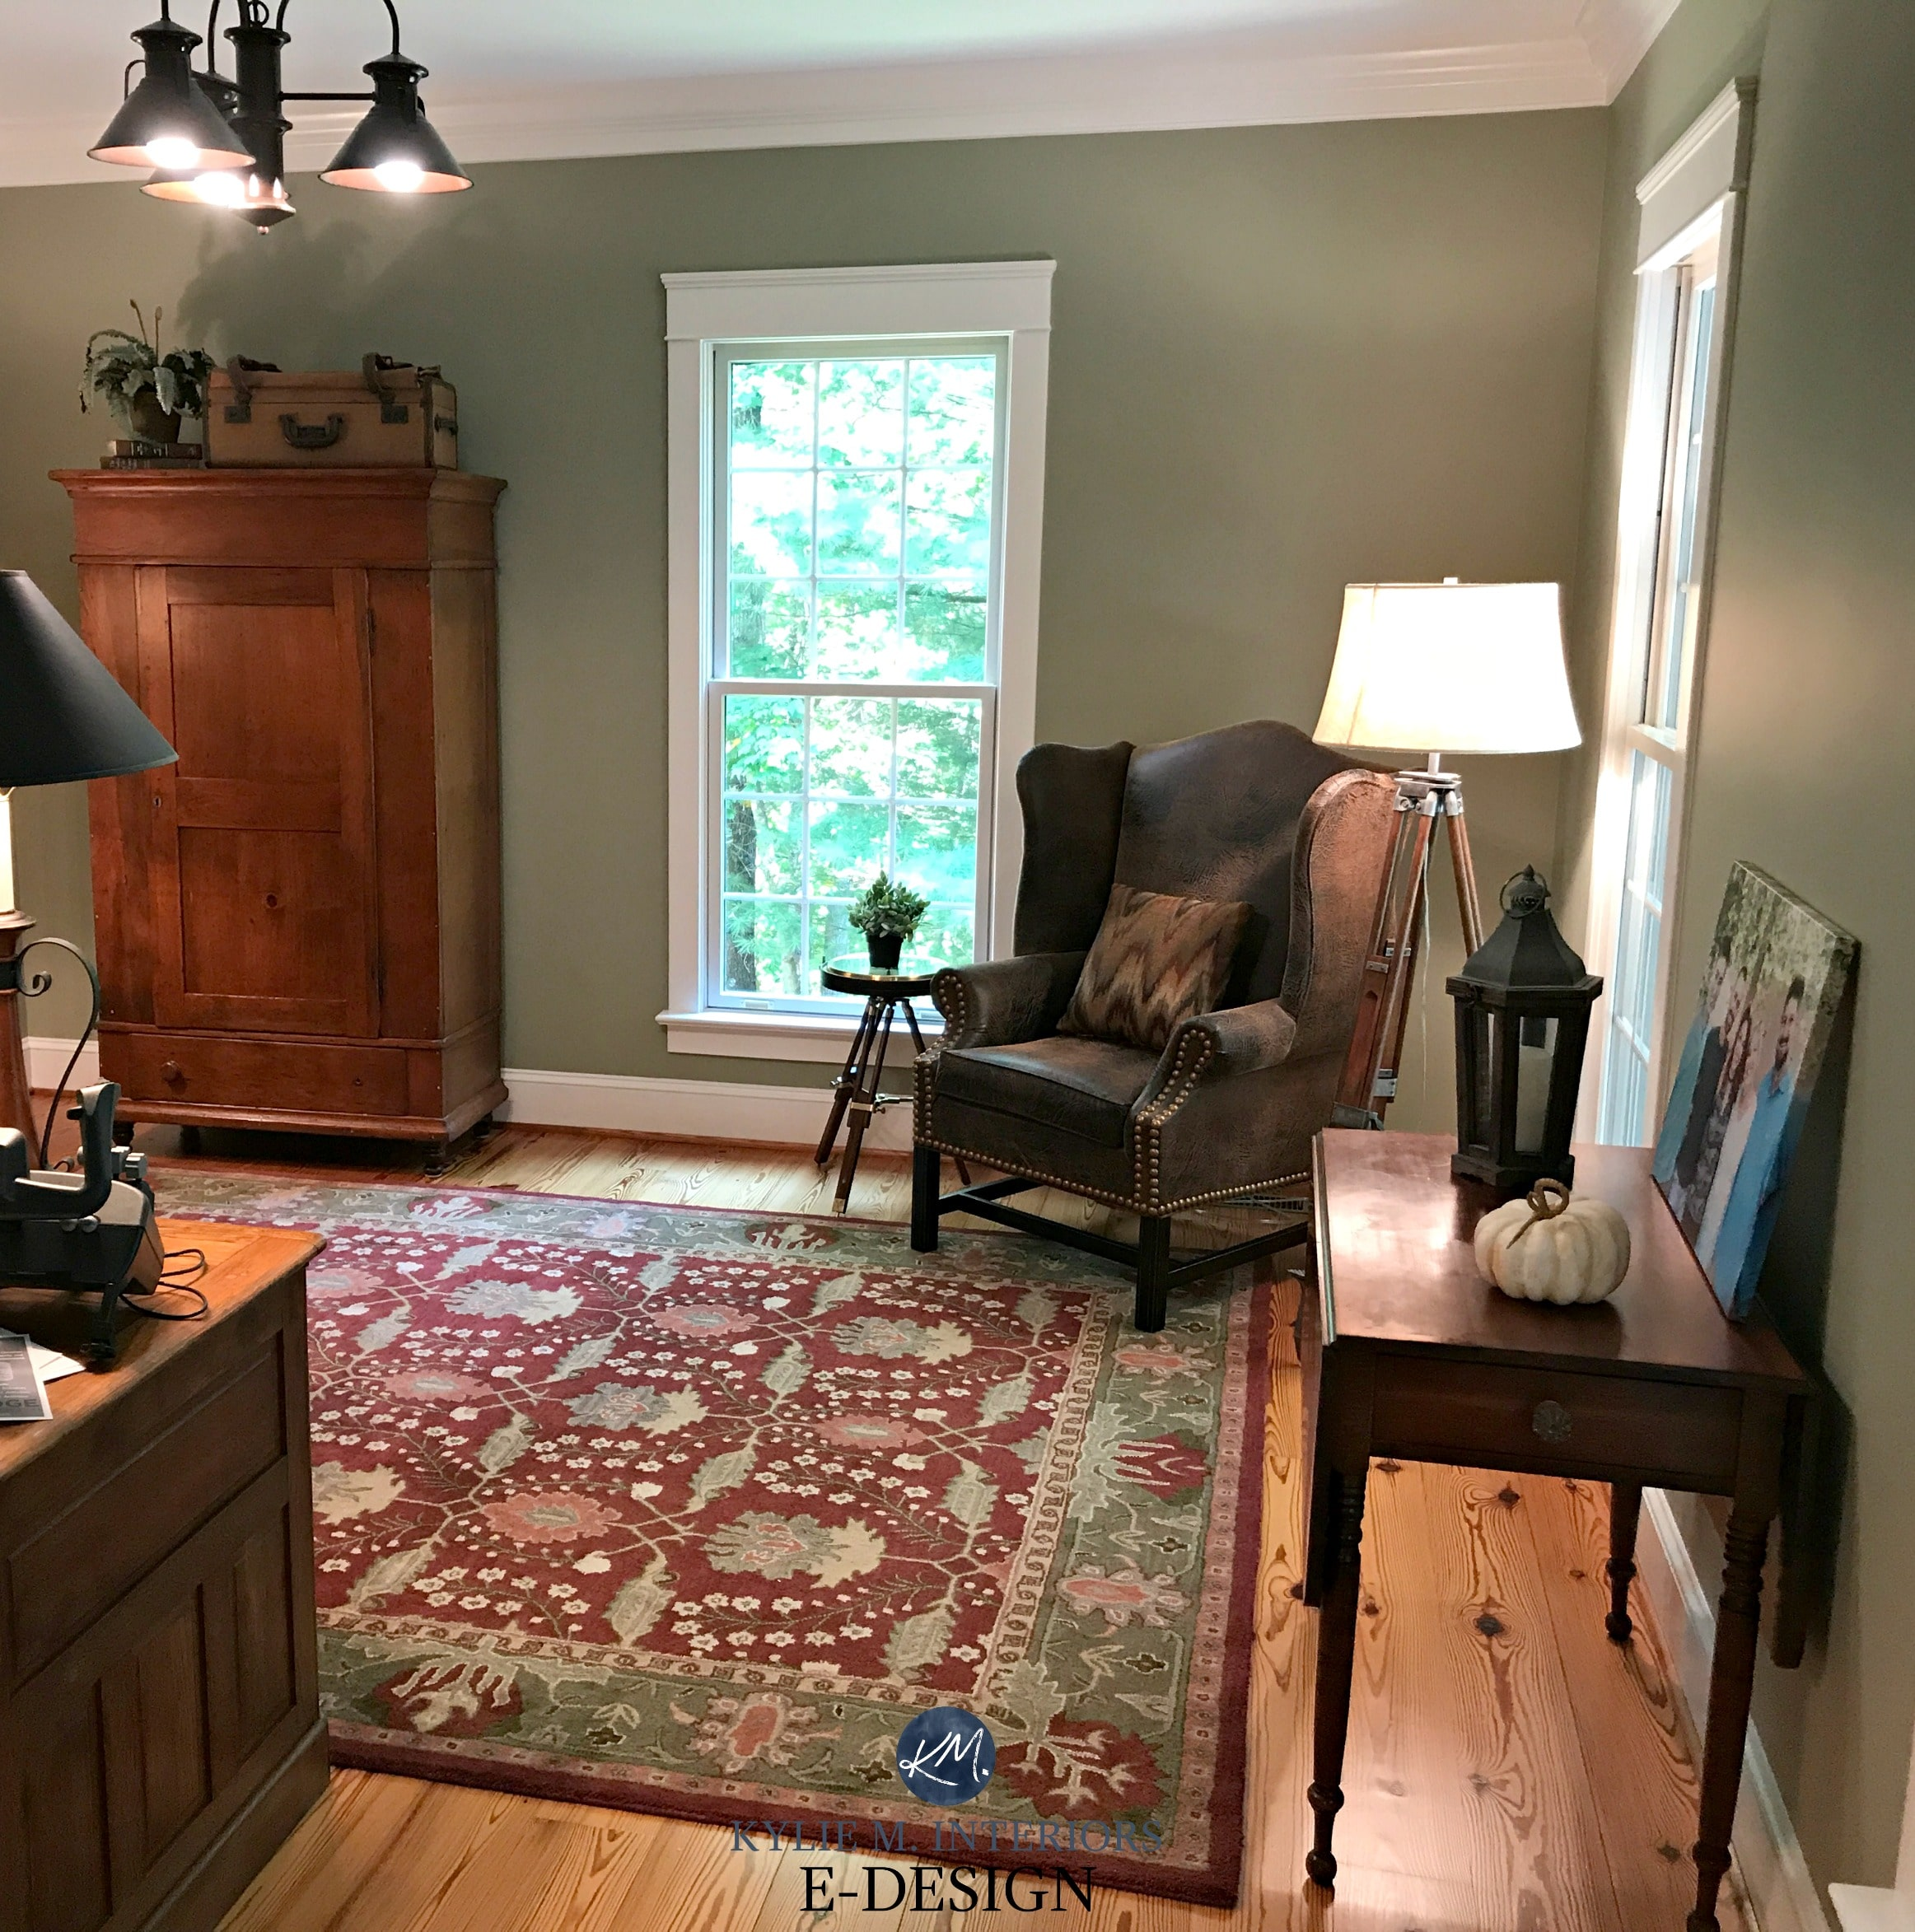 Benjamin Moore Nantucket Gray, A Green Paint Colour. Home Office With Red  And Brown Accents, Country Style. Kylie M E Design, Virtul And Online Colour  ...